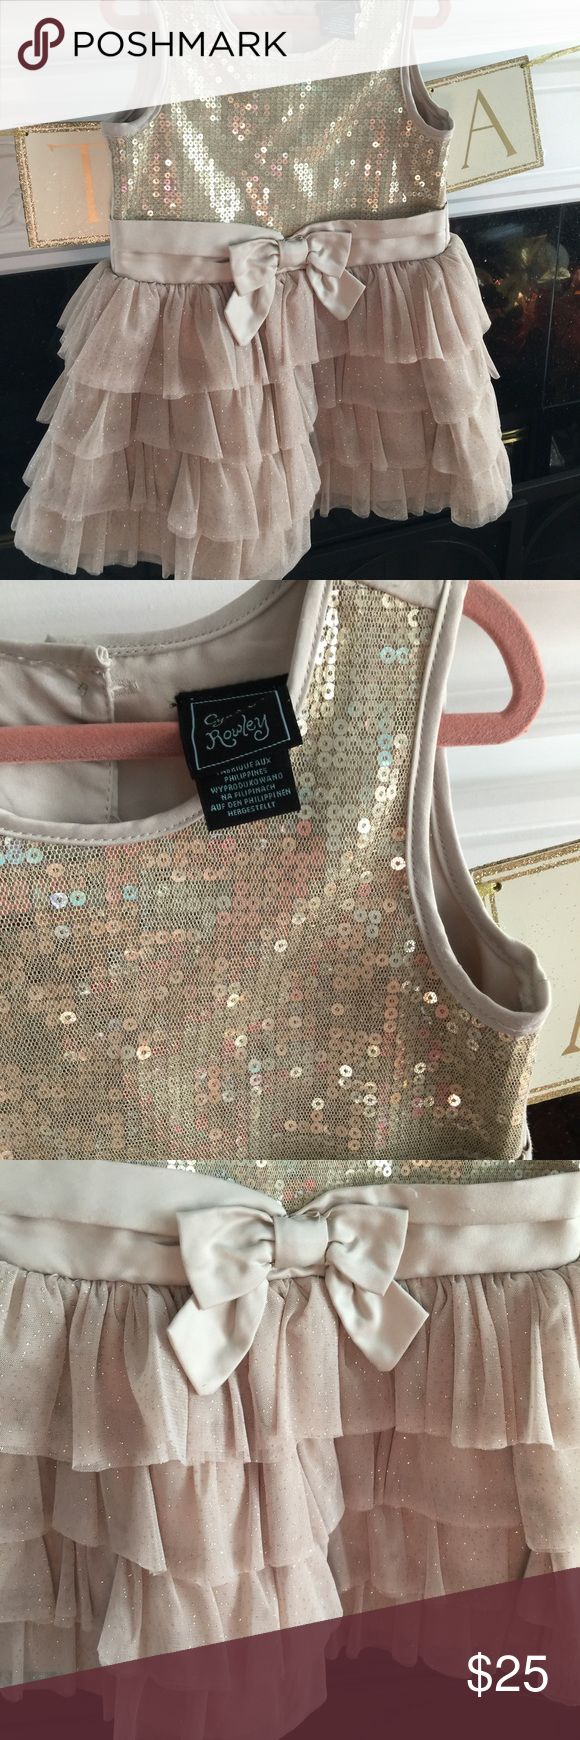 Cynthia Rowley Toddler Holiday Dress Lovely gold sparkly dress! Daughter loved it and she was so sad I am selling. In excellent condition, used 1 time. No stains/rips/holes Cynthia Rowley Dresses Formal